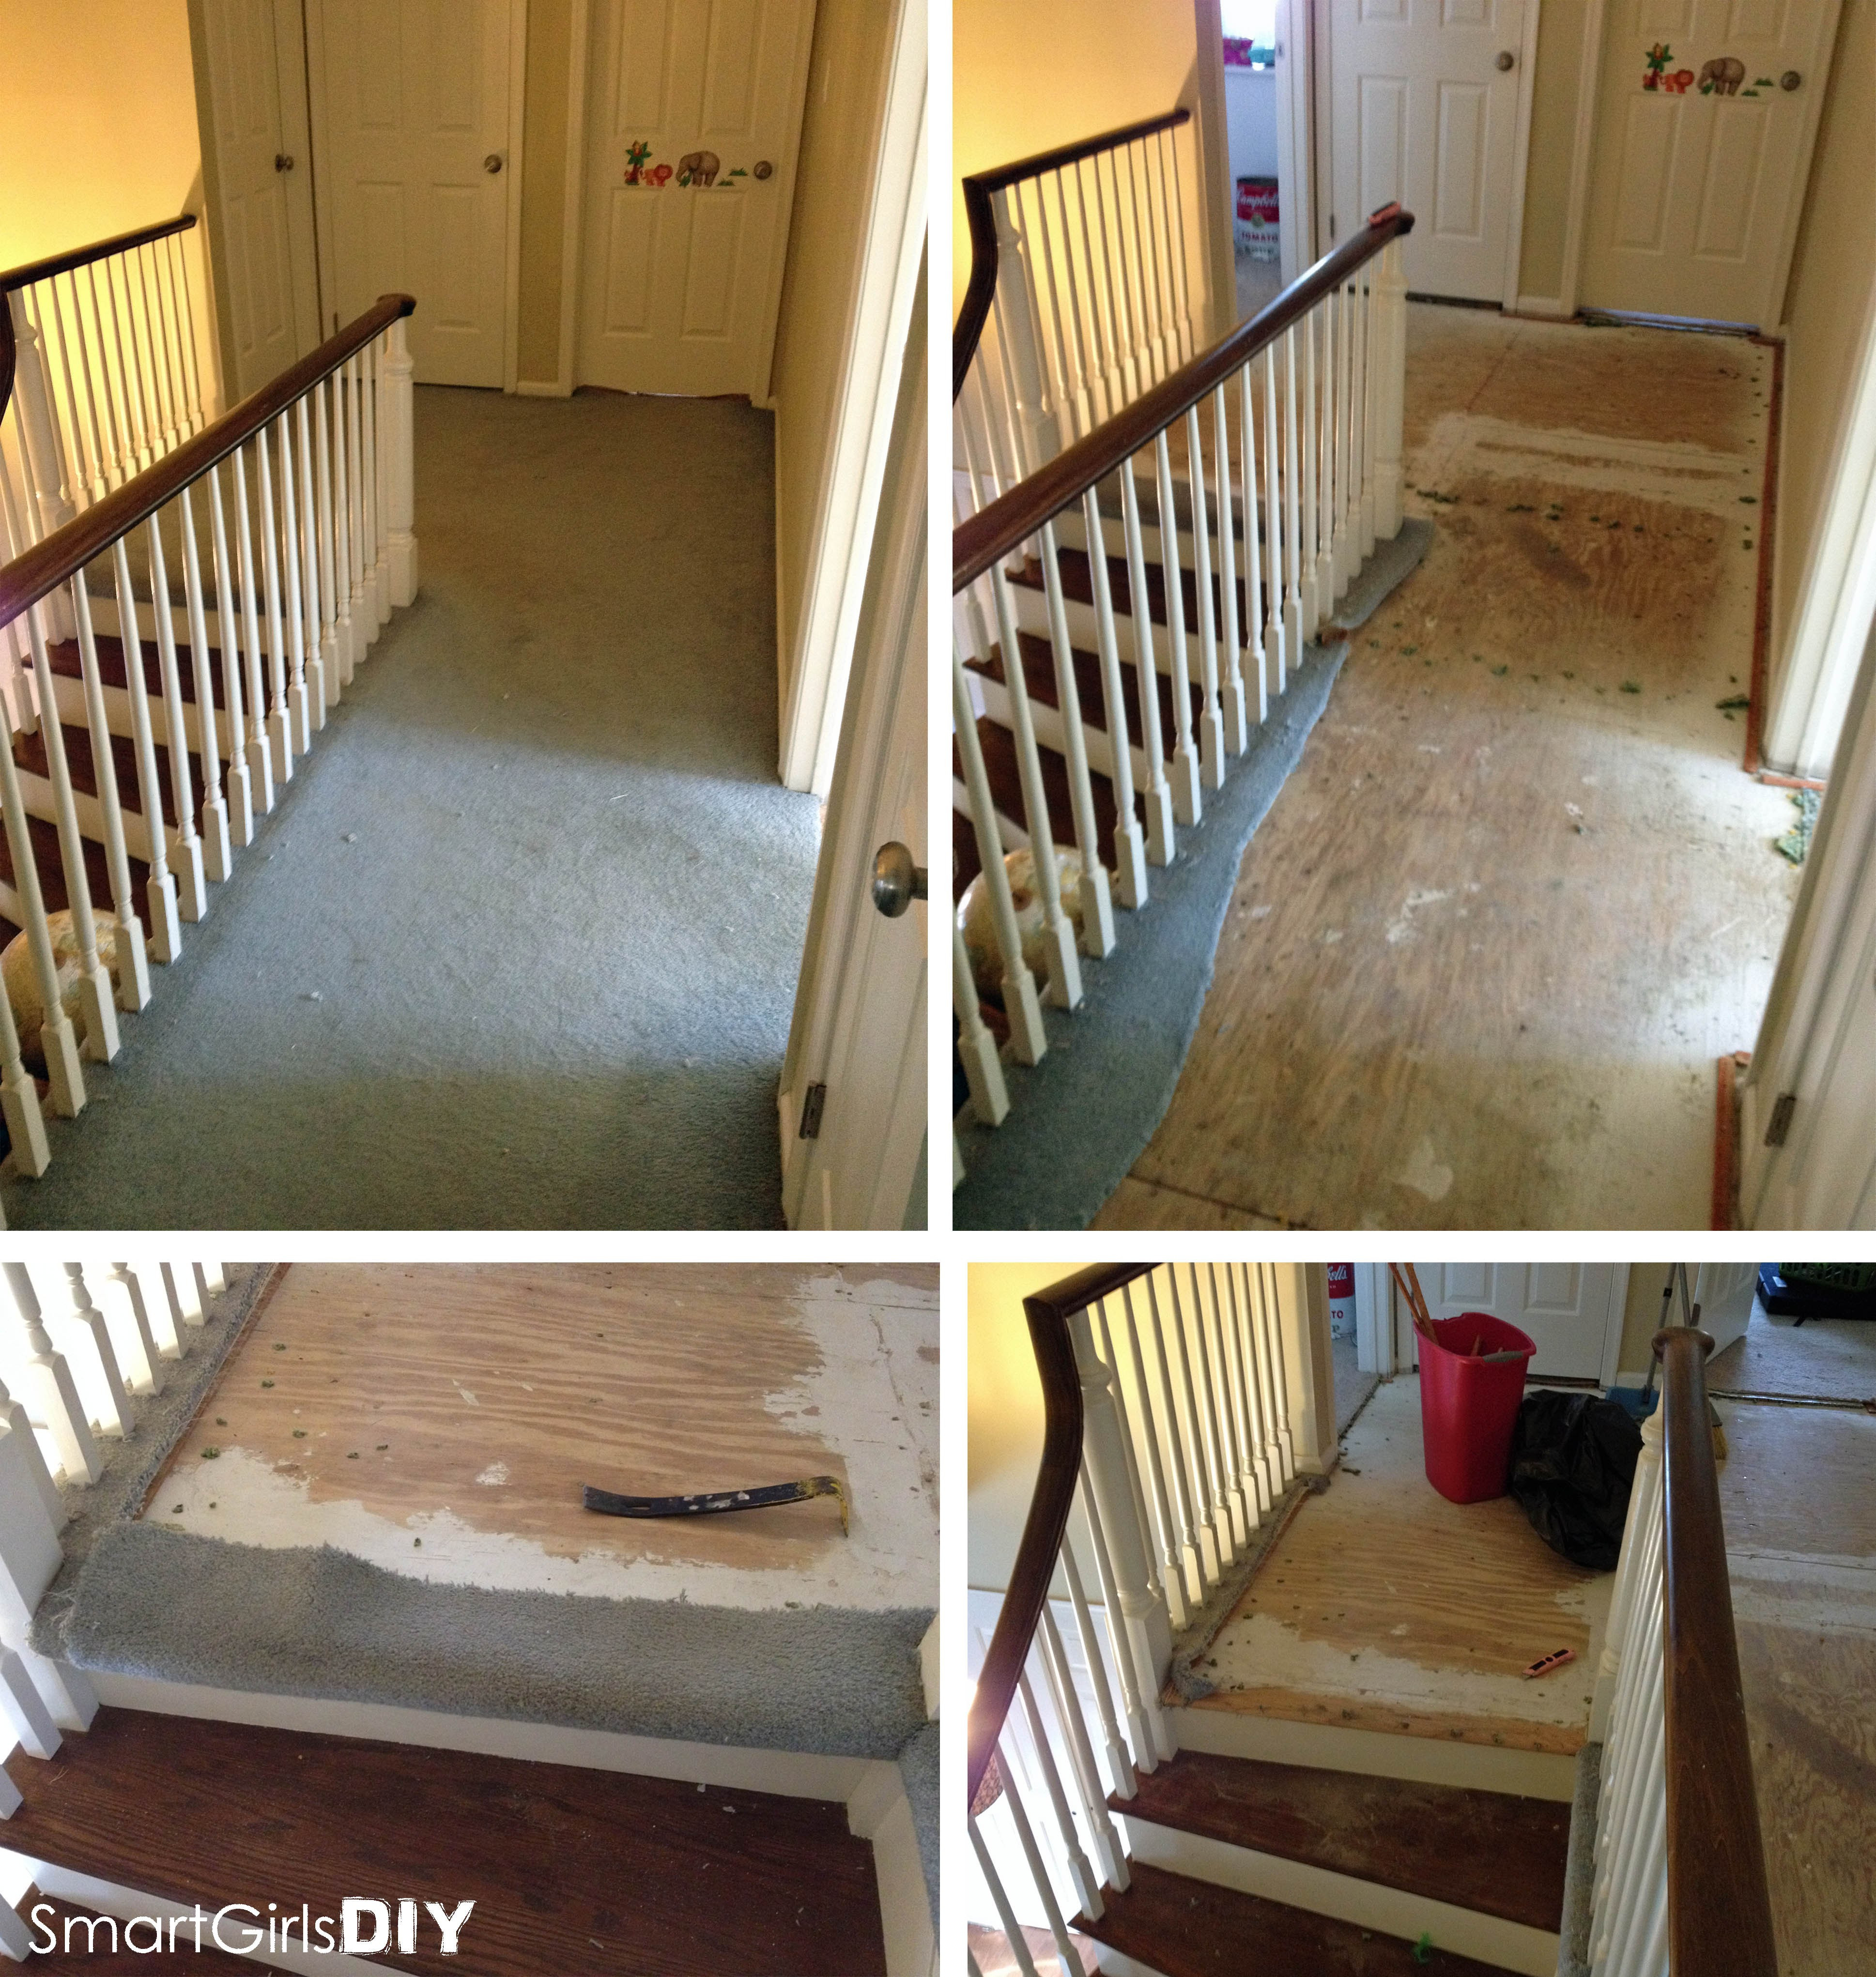 direction hardwood floors should be laid of upstairs hallway 1 installing hardwood floors with removing carpet from hallway installing the hardwood floor